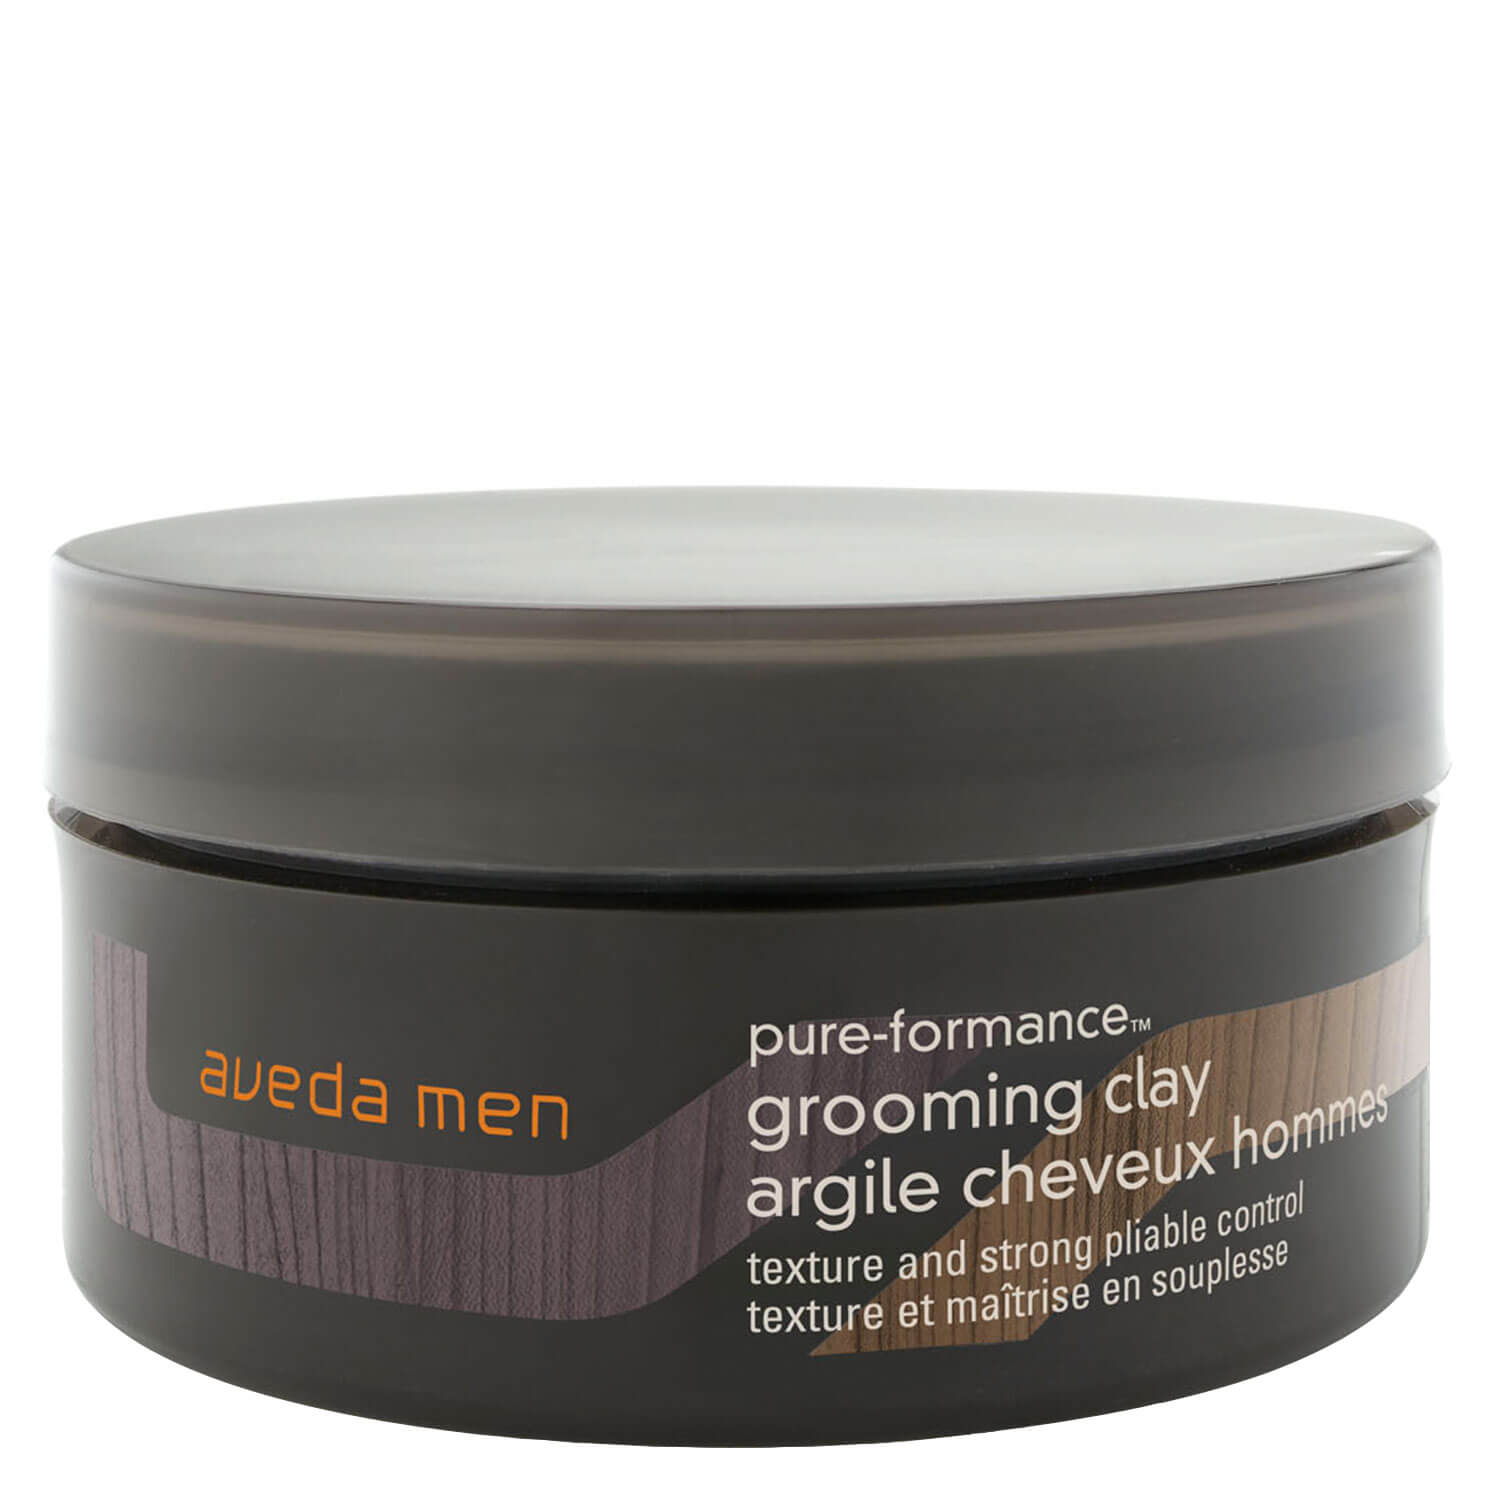 men pure-formance - grooming clay